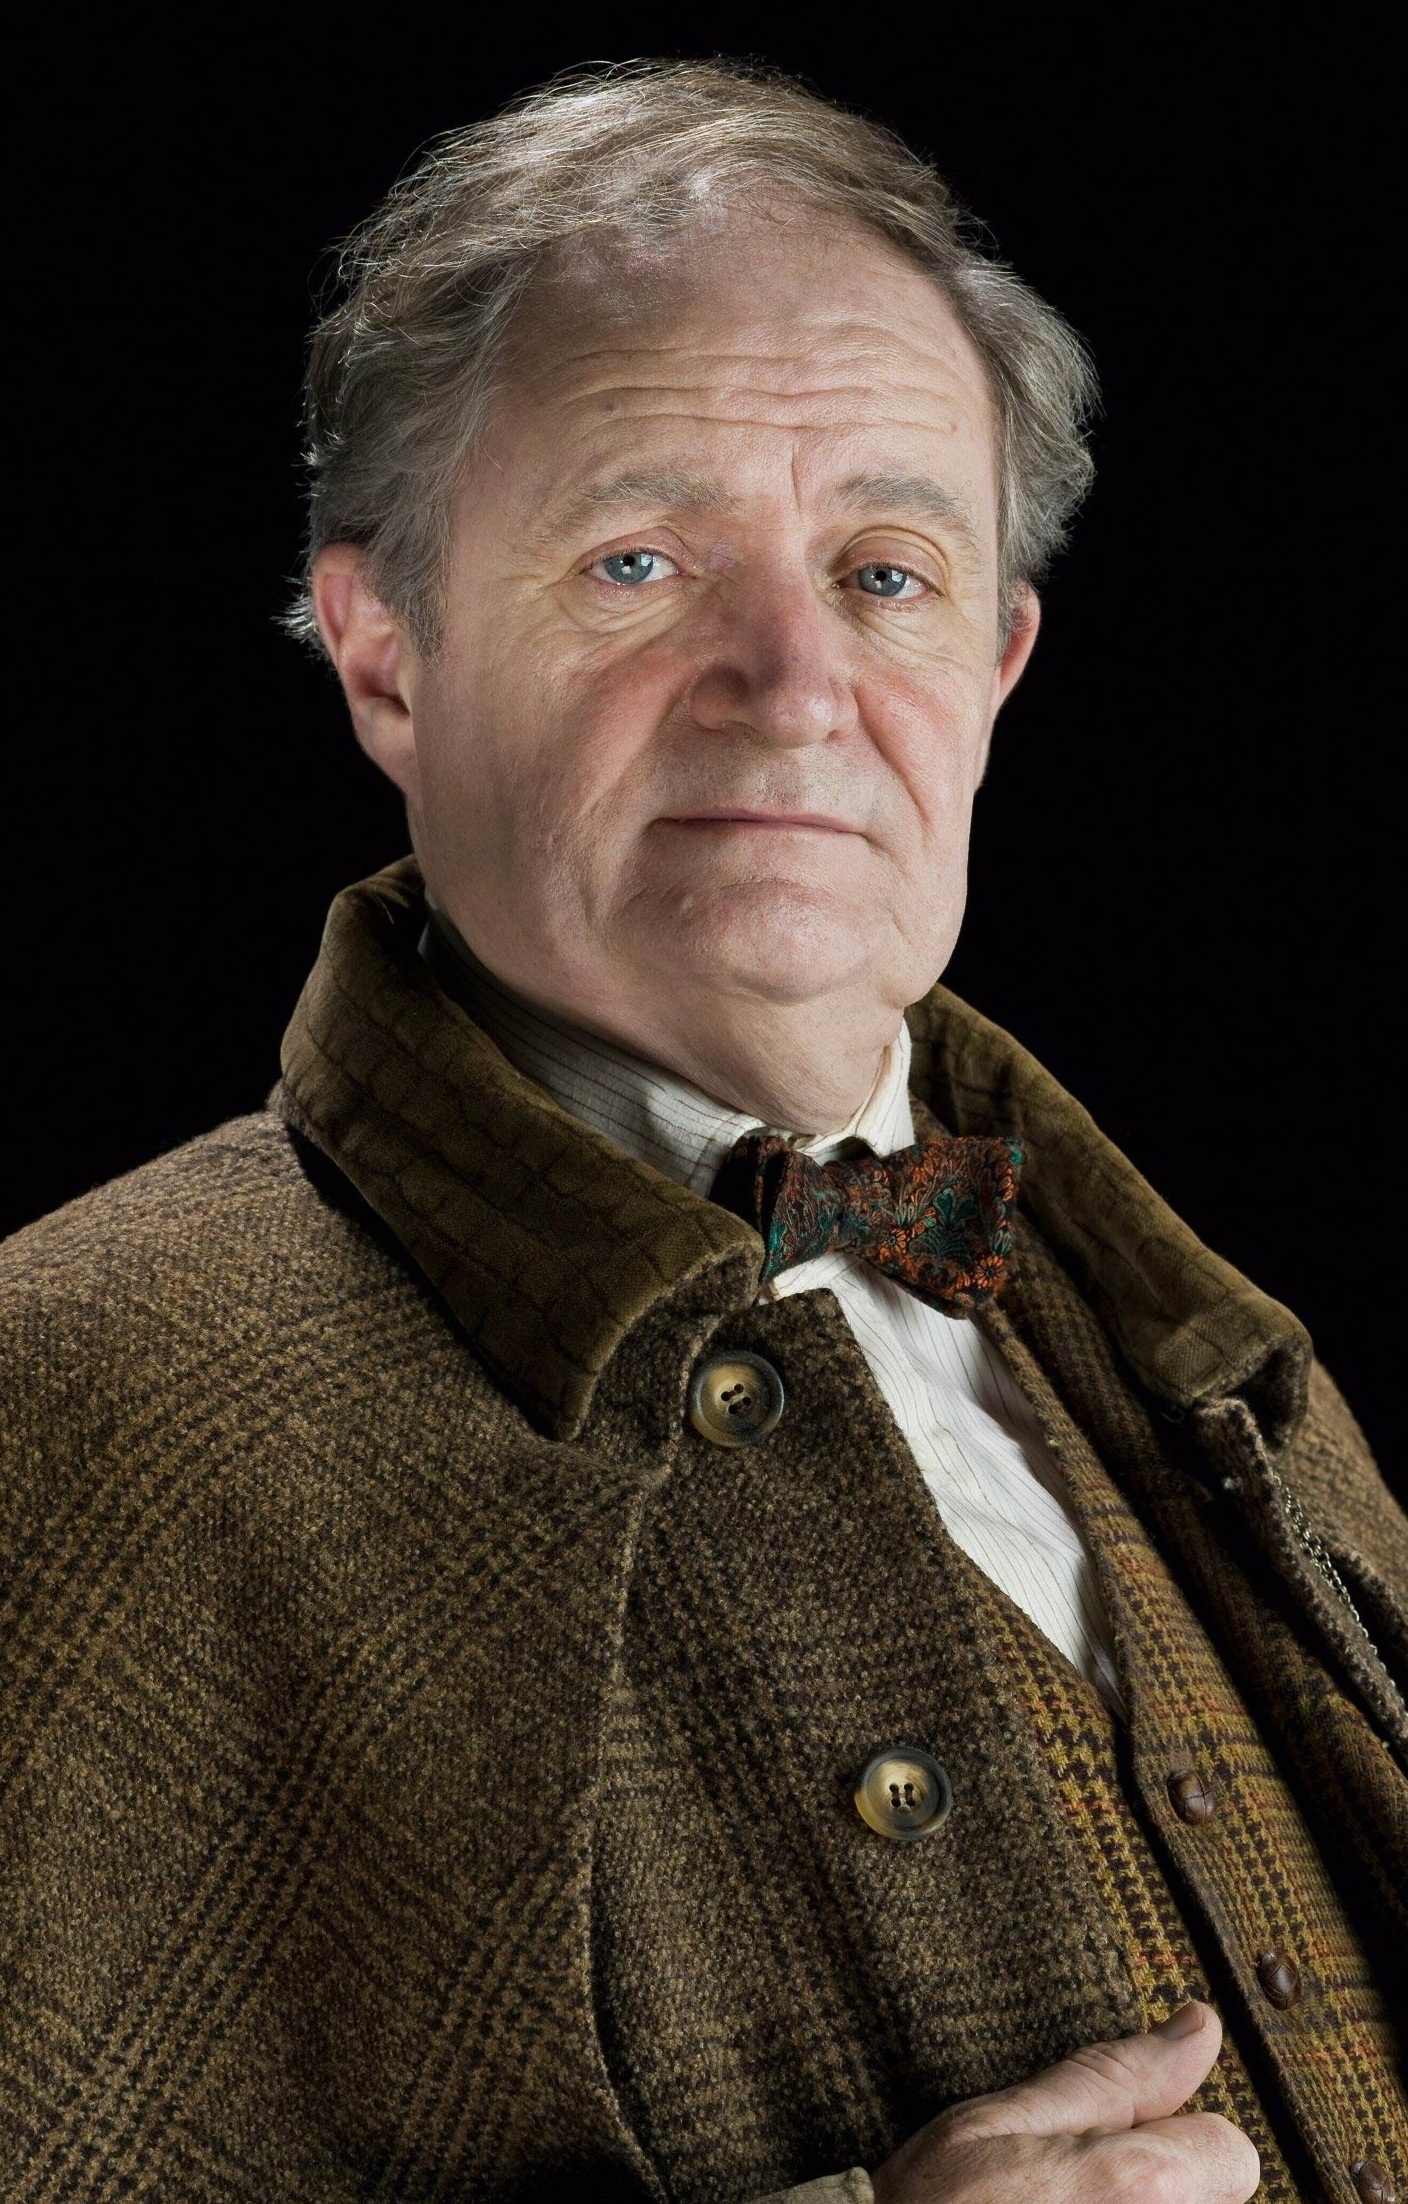 Horace Slughorn | Harry-Potter-Lexikon | FANDOM powered by Wikia